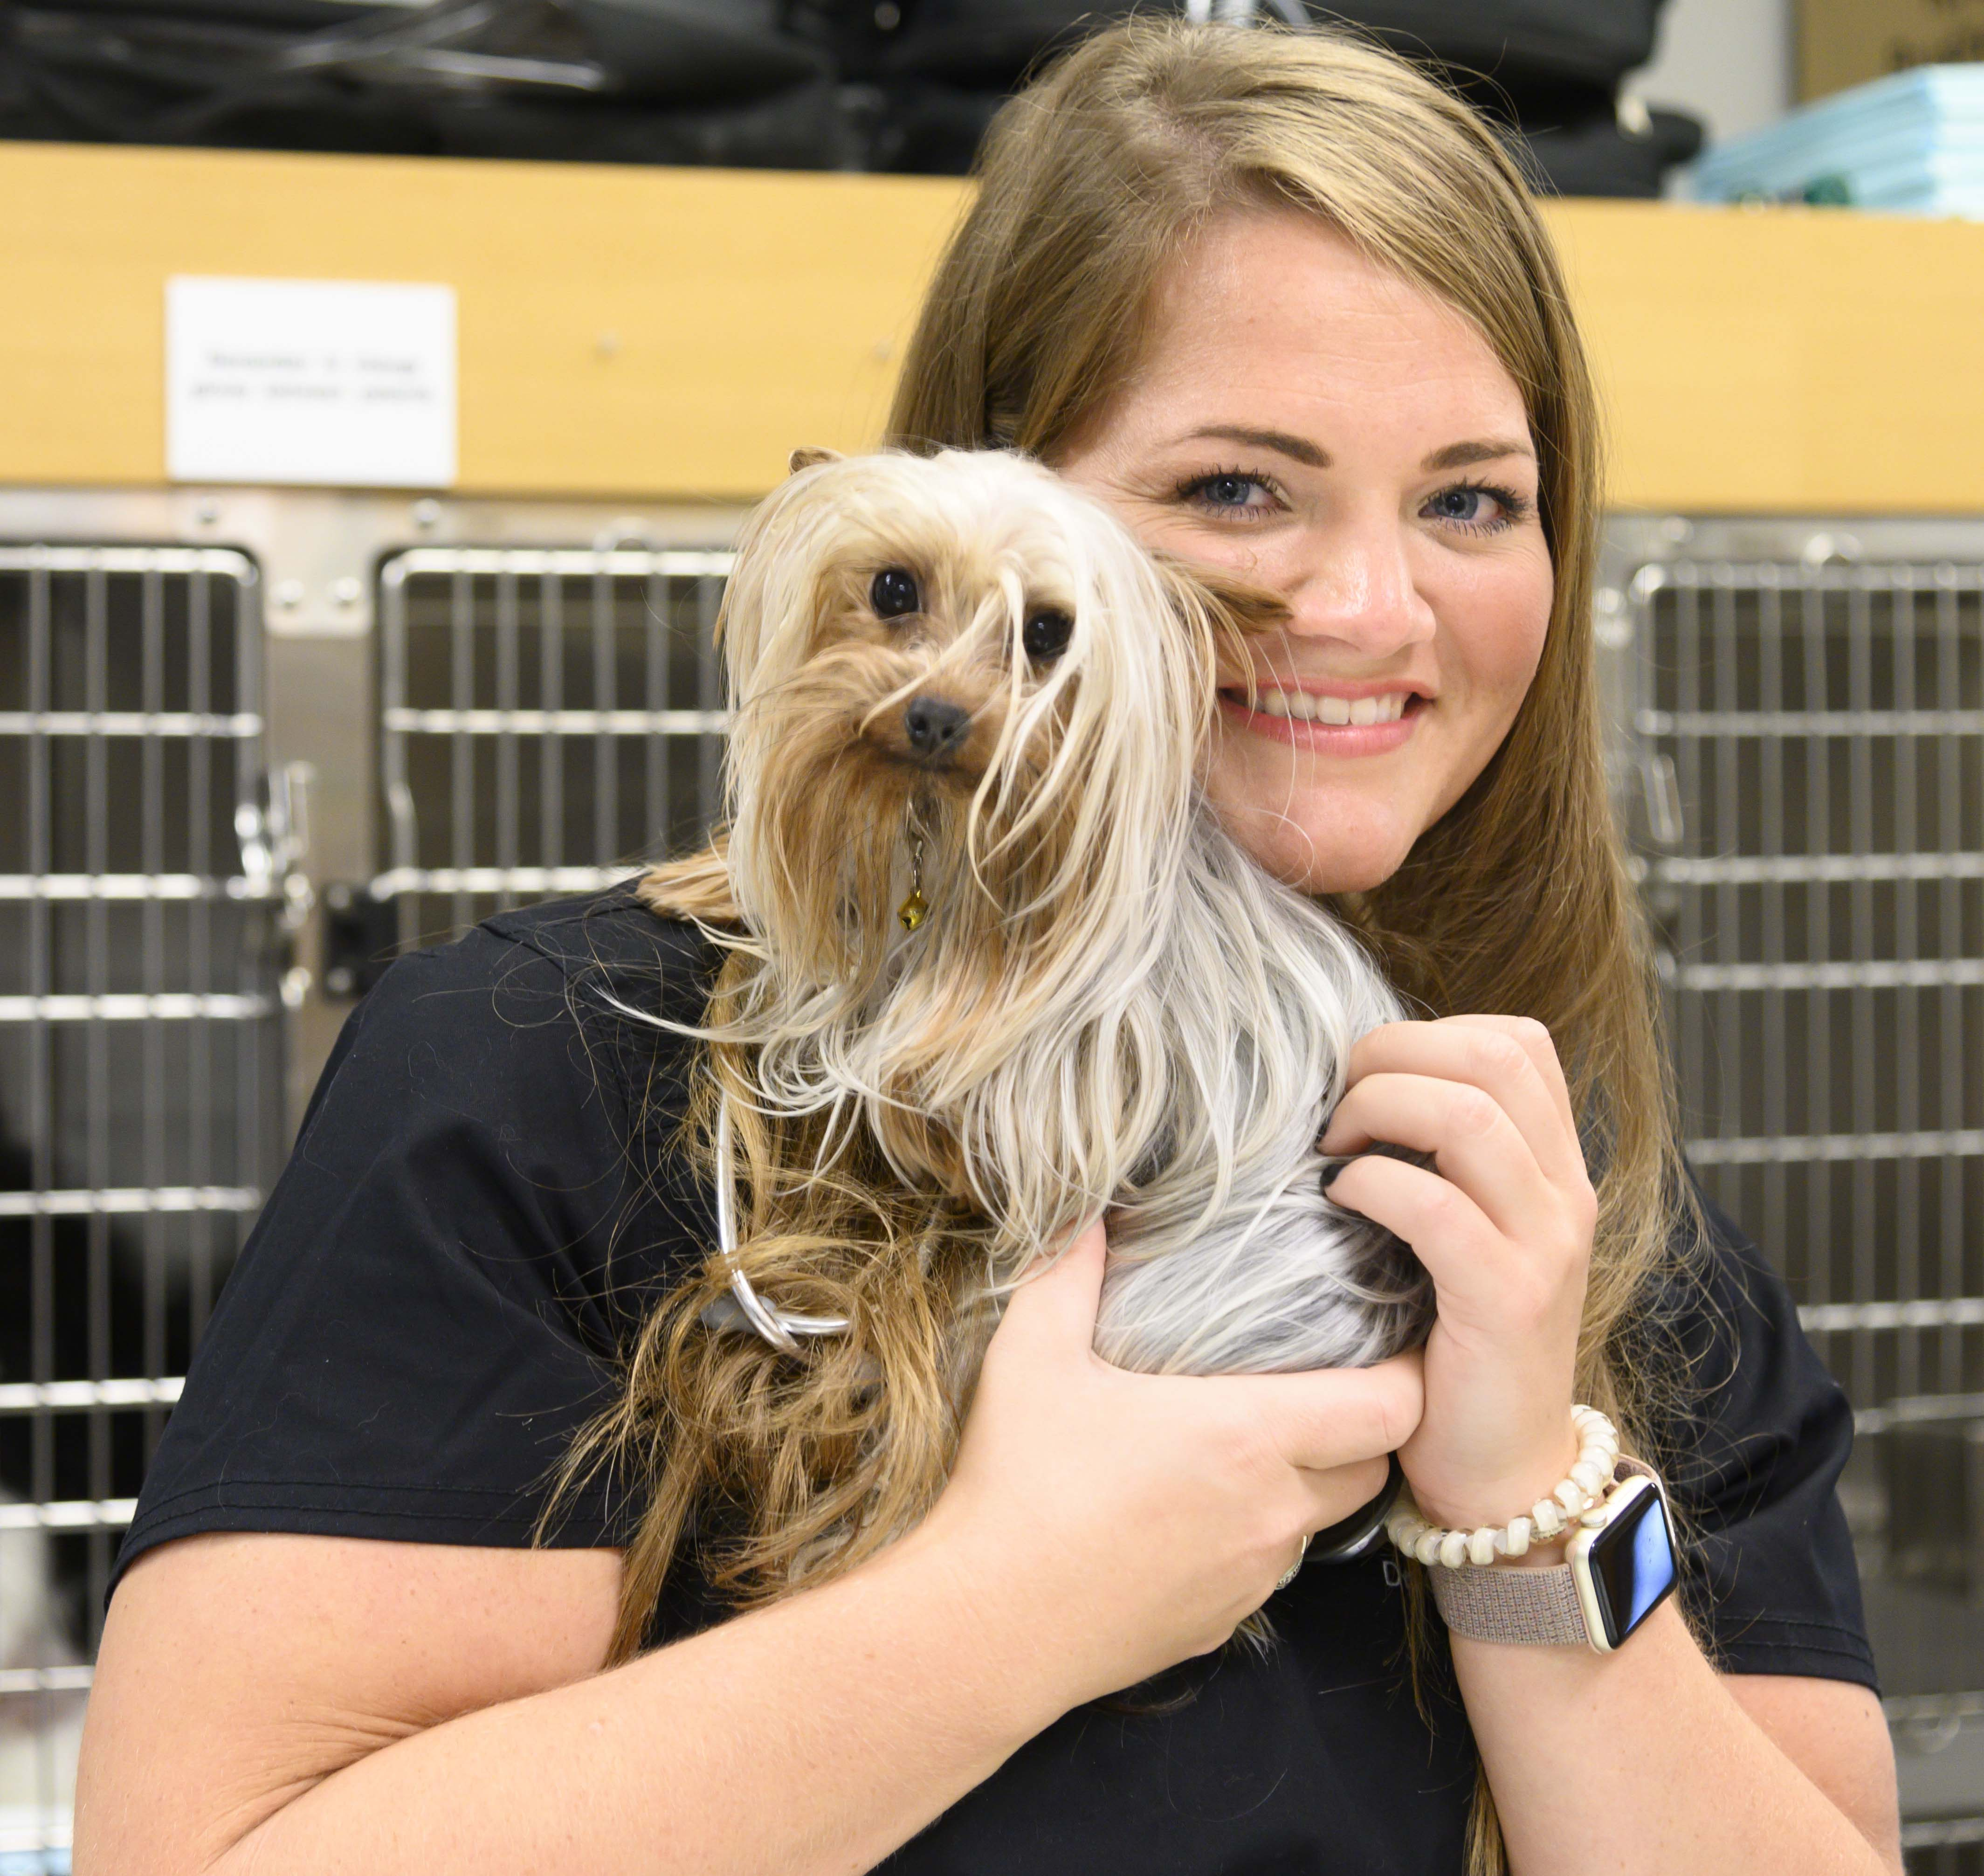 A veterinarian poses with a yorkie